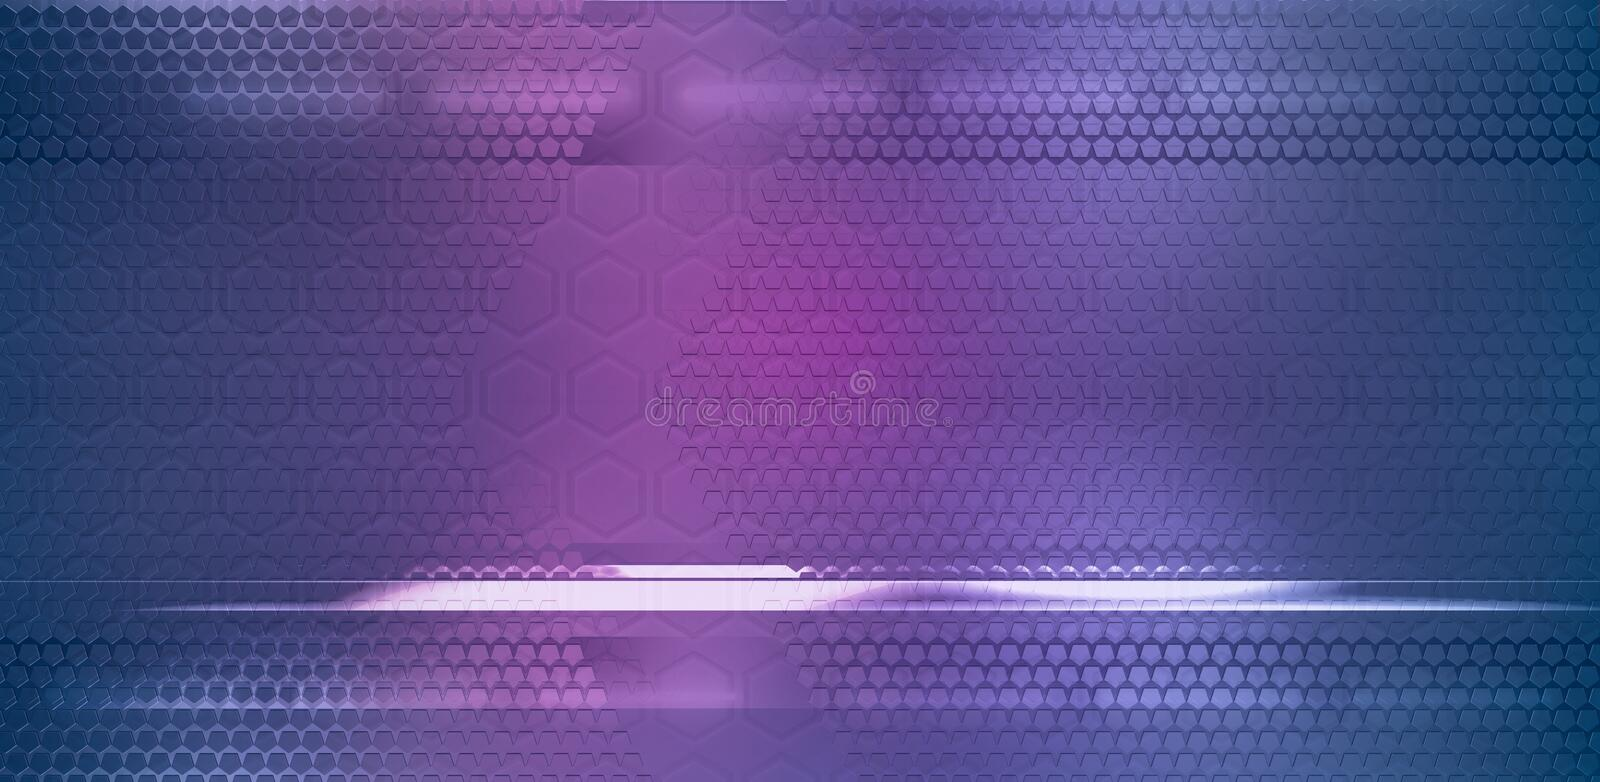 Background creative abstract 3d-illustration royalty free illustration